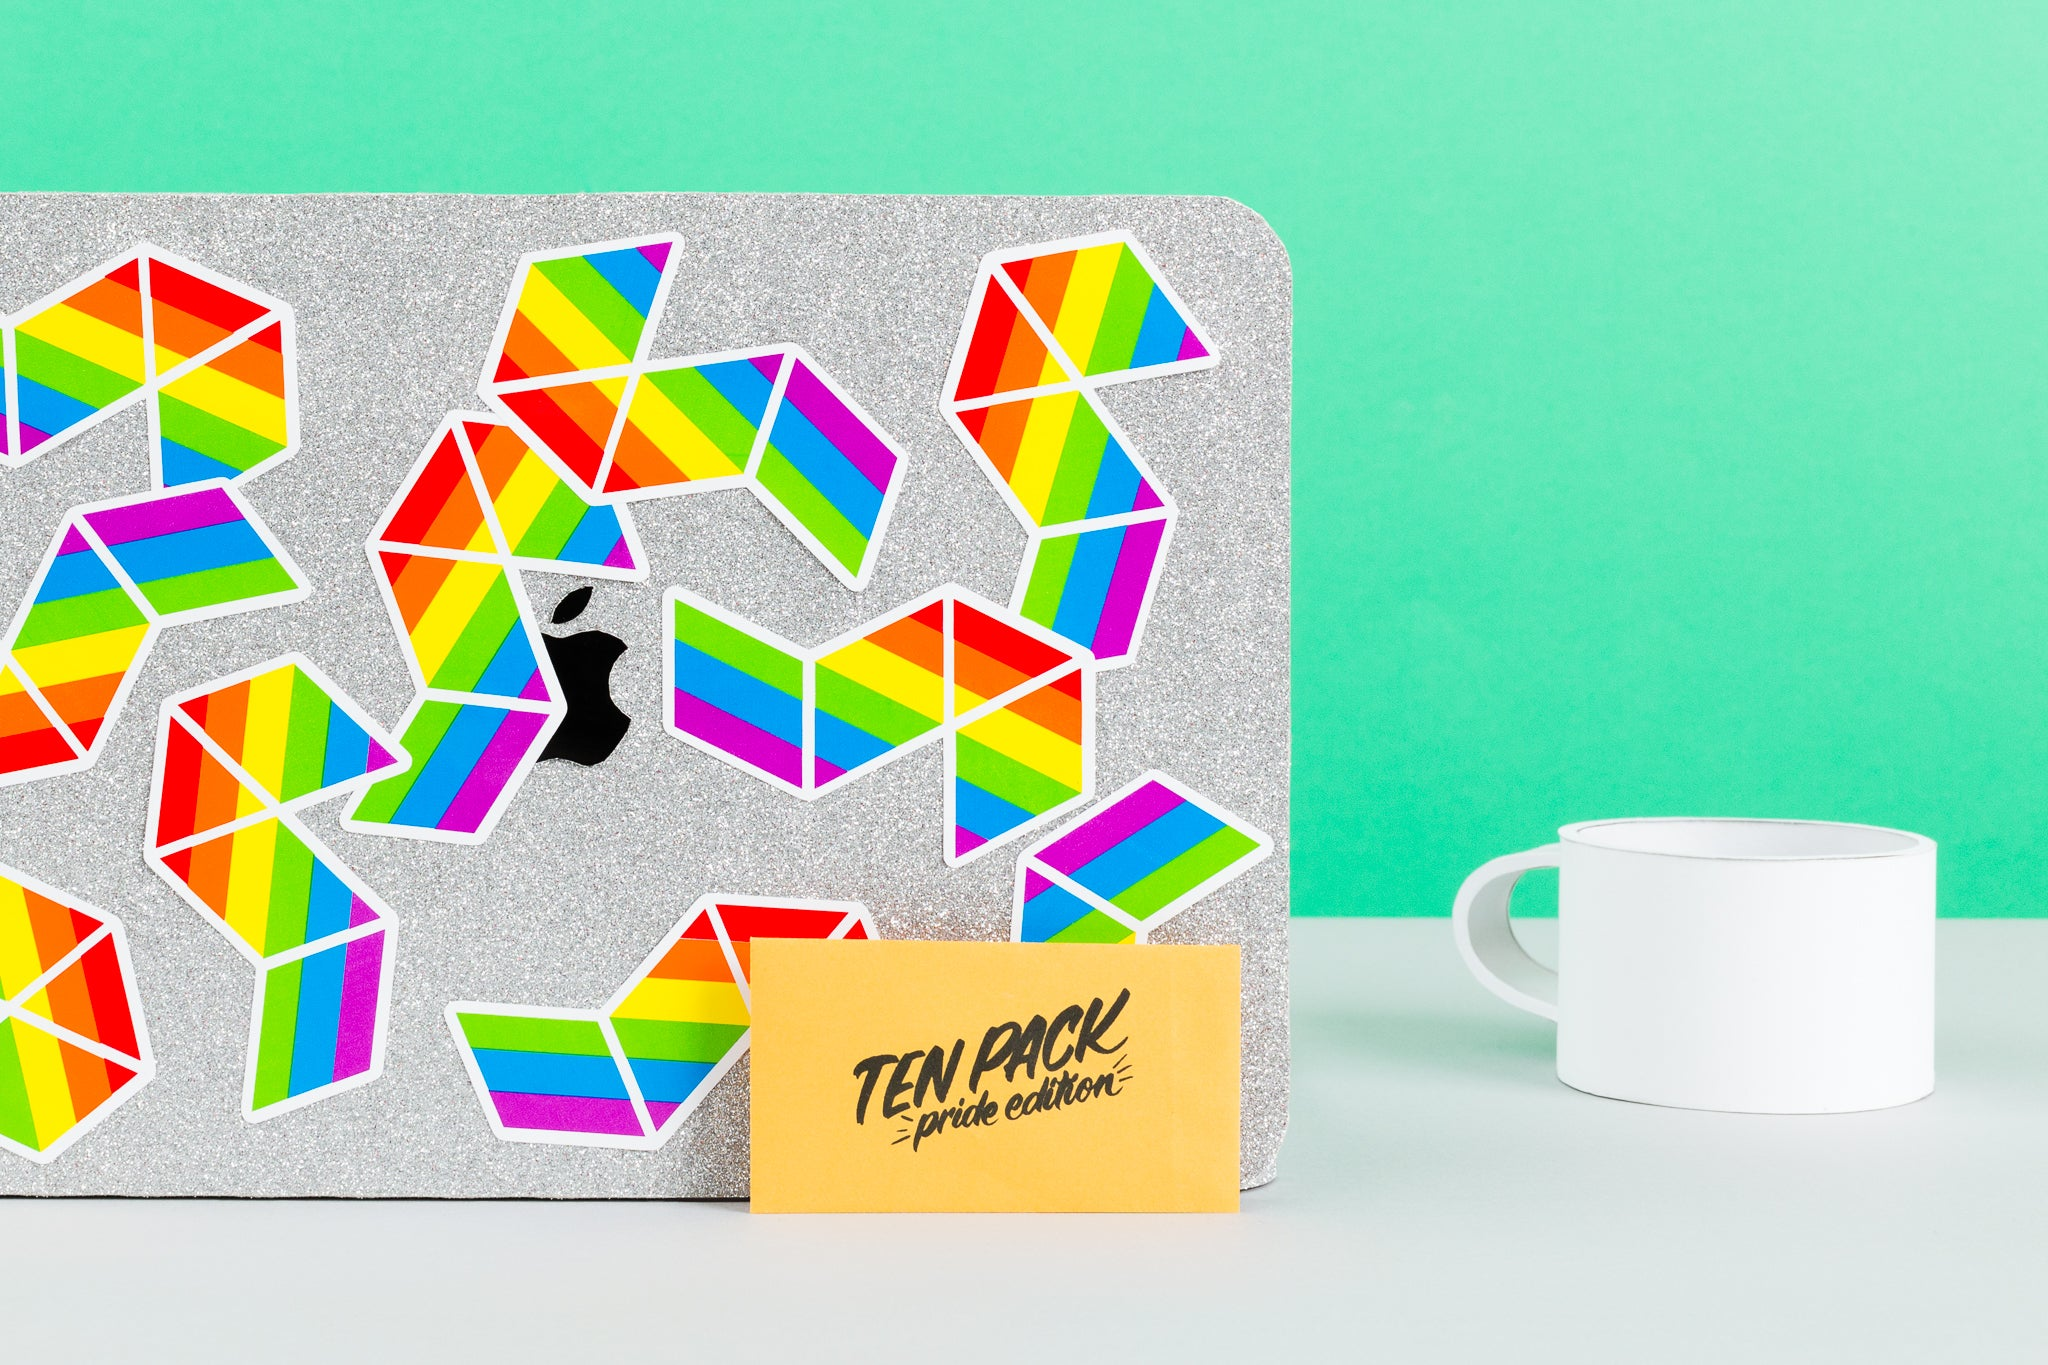 10 rainbow pride stickers, shown on desk with laptop